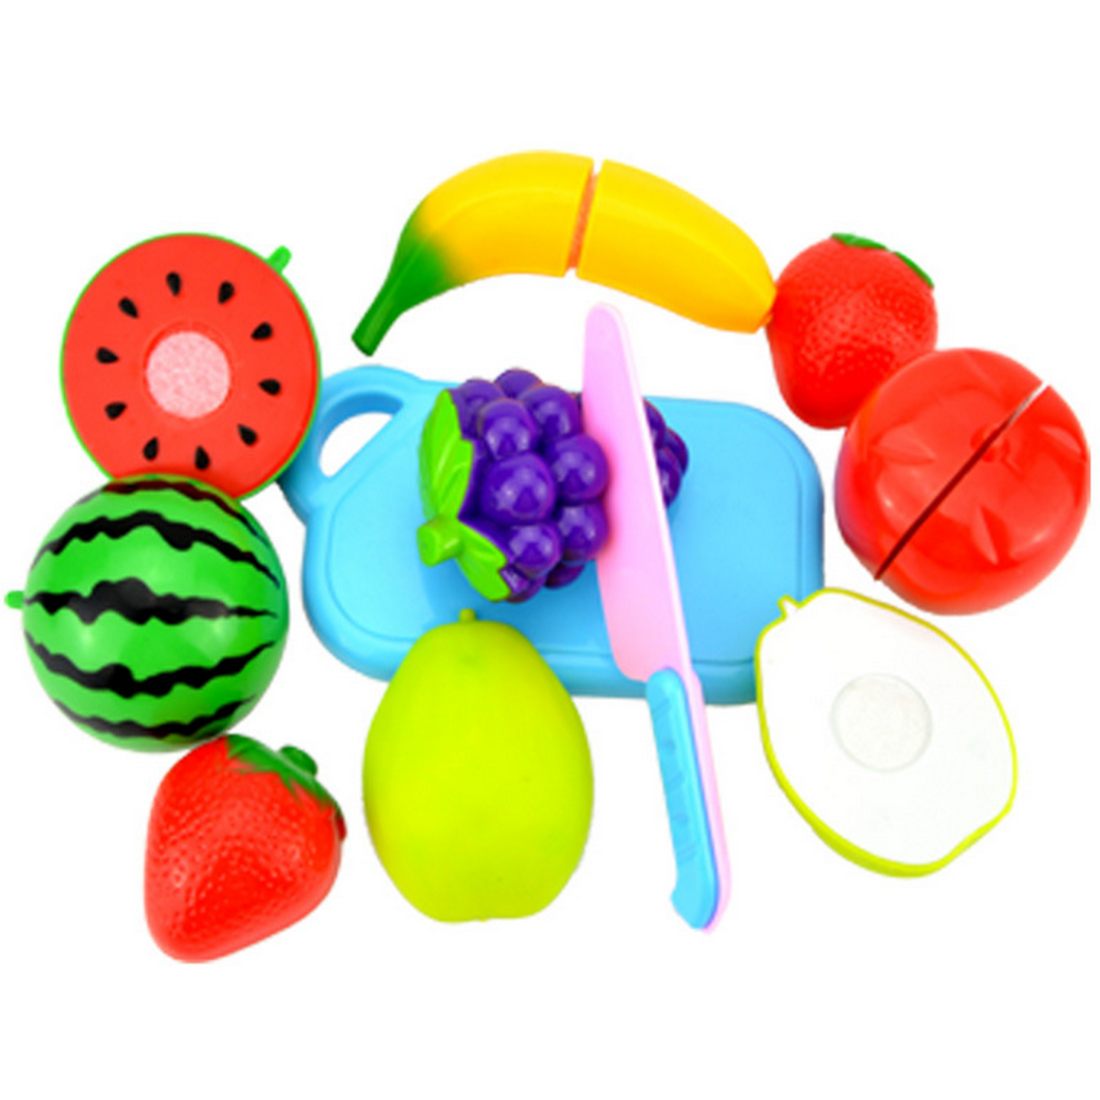 8Pcs/Set Plastic Fruit Cutting Toy Early Development and Education Toy for Baby - Color Random